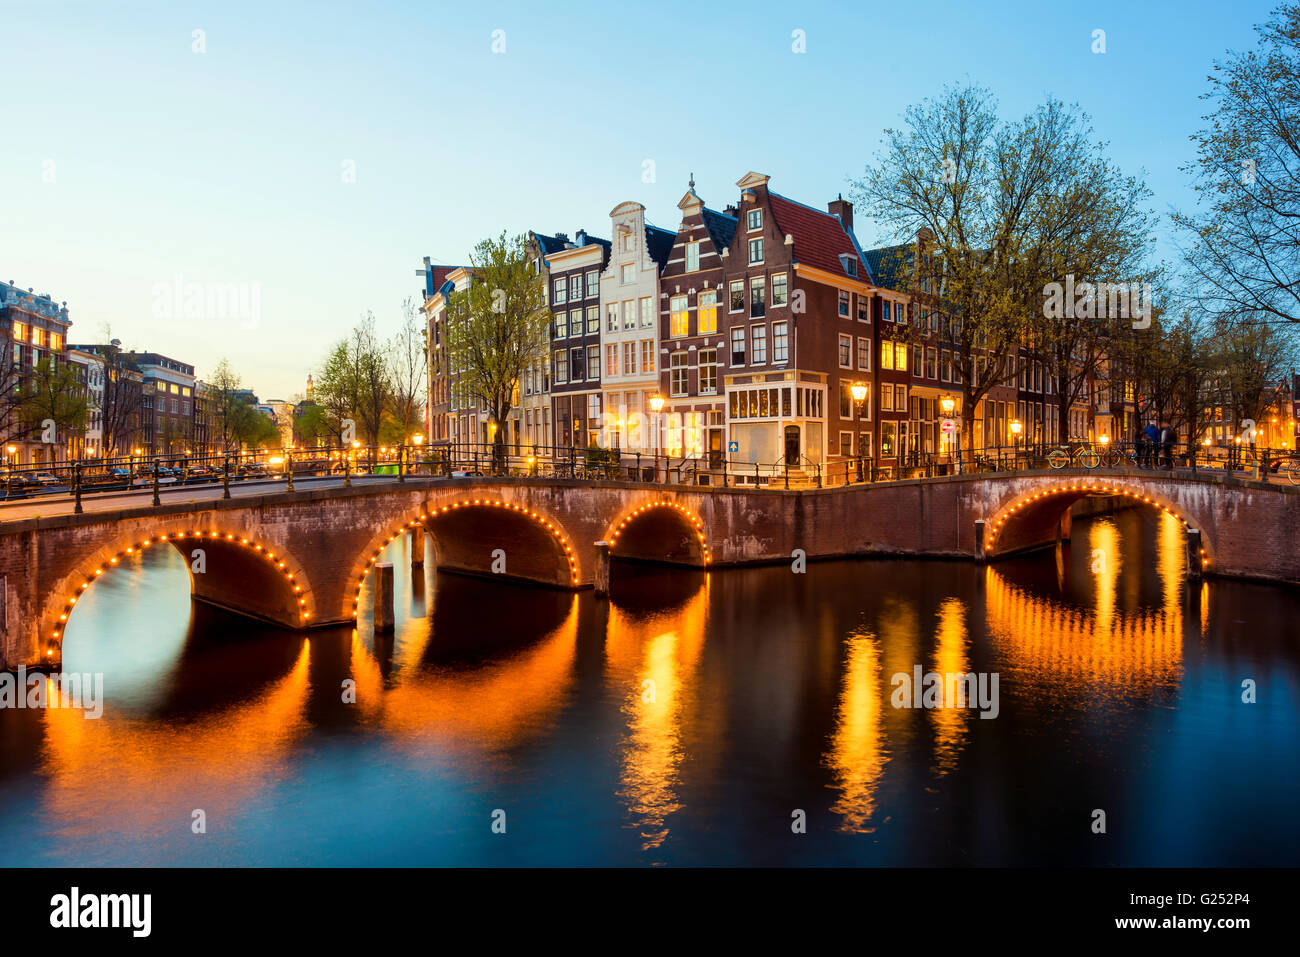 Wonderful view on houses of Amsterdam in night, Netherlands - Stock Image